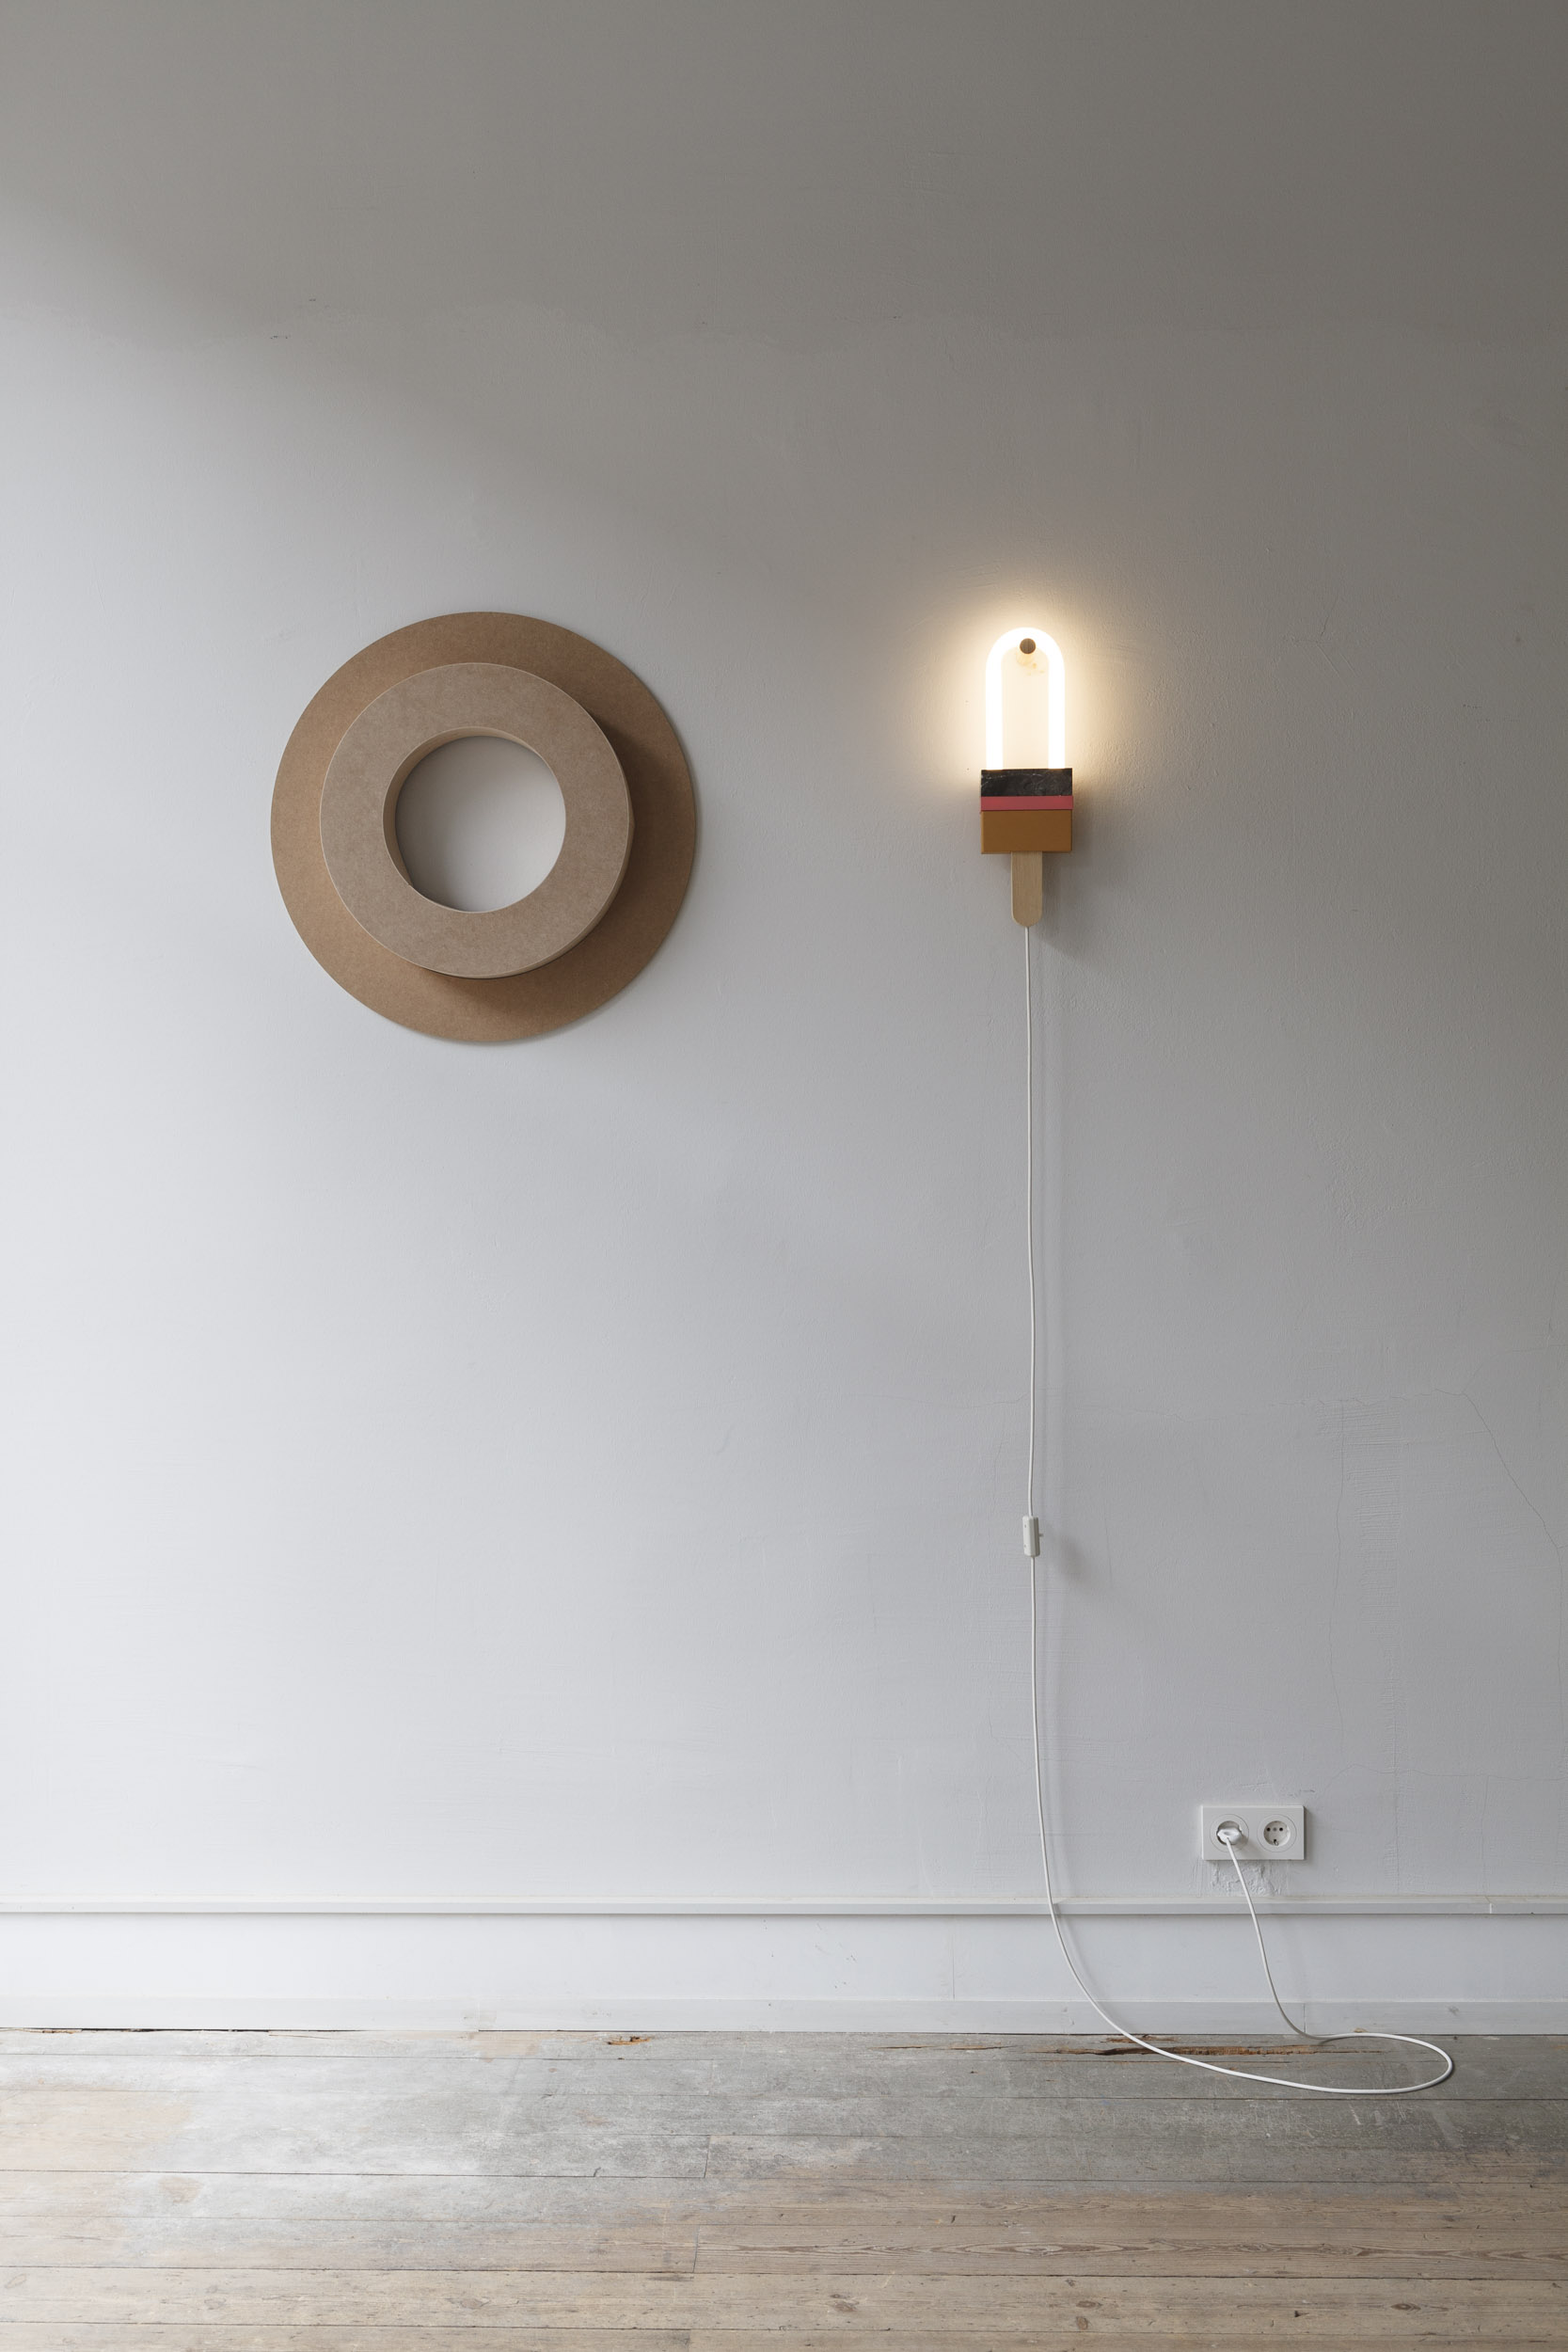 LIGHT SCULPTURE POPP,  GLASS, ACRYLIC, LACQUERED MDF, NATURAL STONE, WOOD  14 x 4 x 44cm  Many thanks to  Van Den Weghe , Belgium for their support